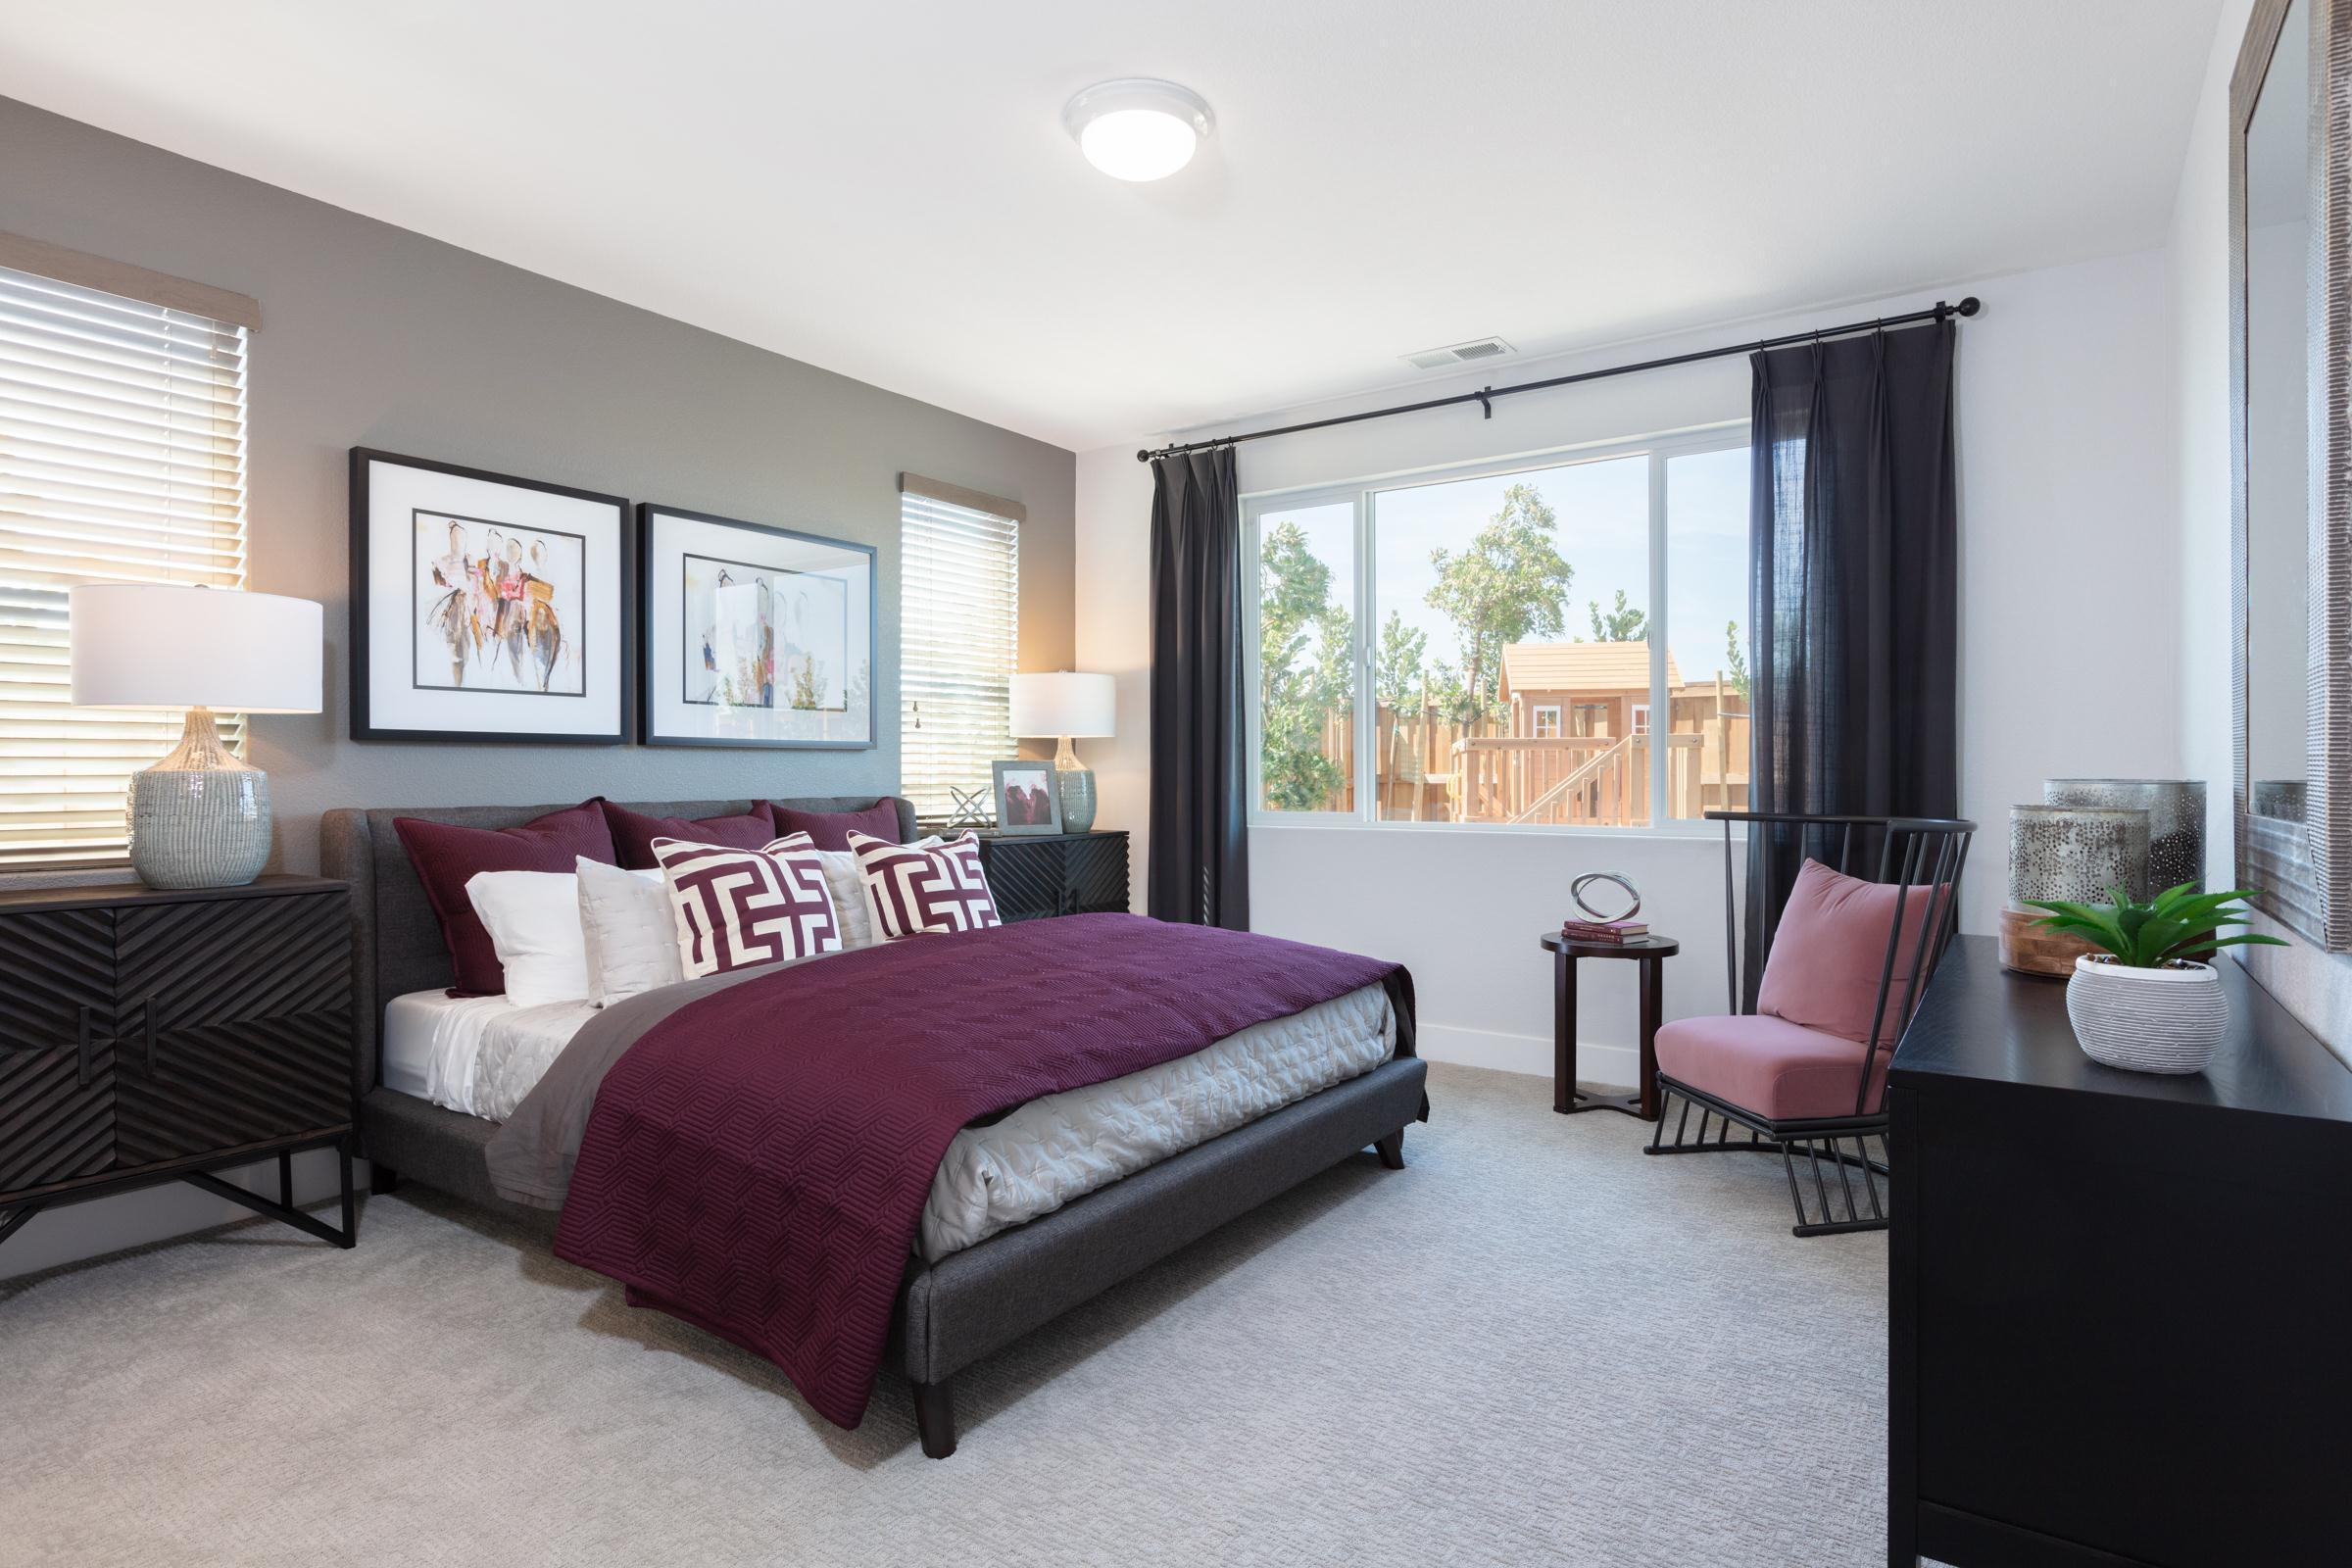 Bedroom featured in the Plan 1 By Anthem United Homes Inc in Stockton-Lodi, CA